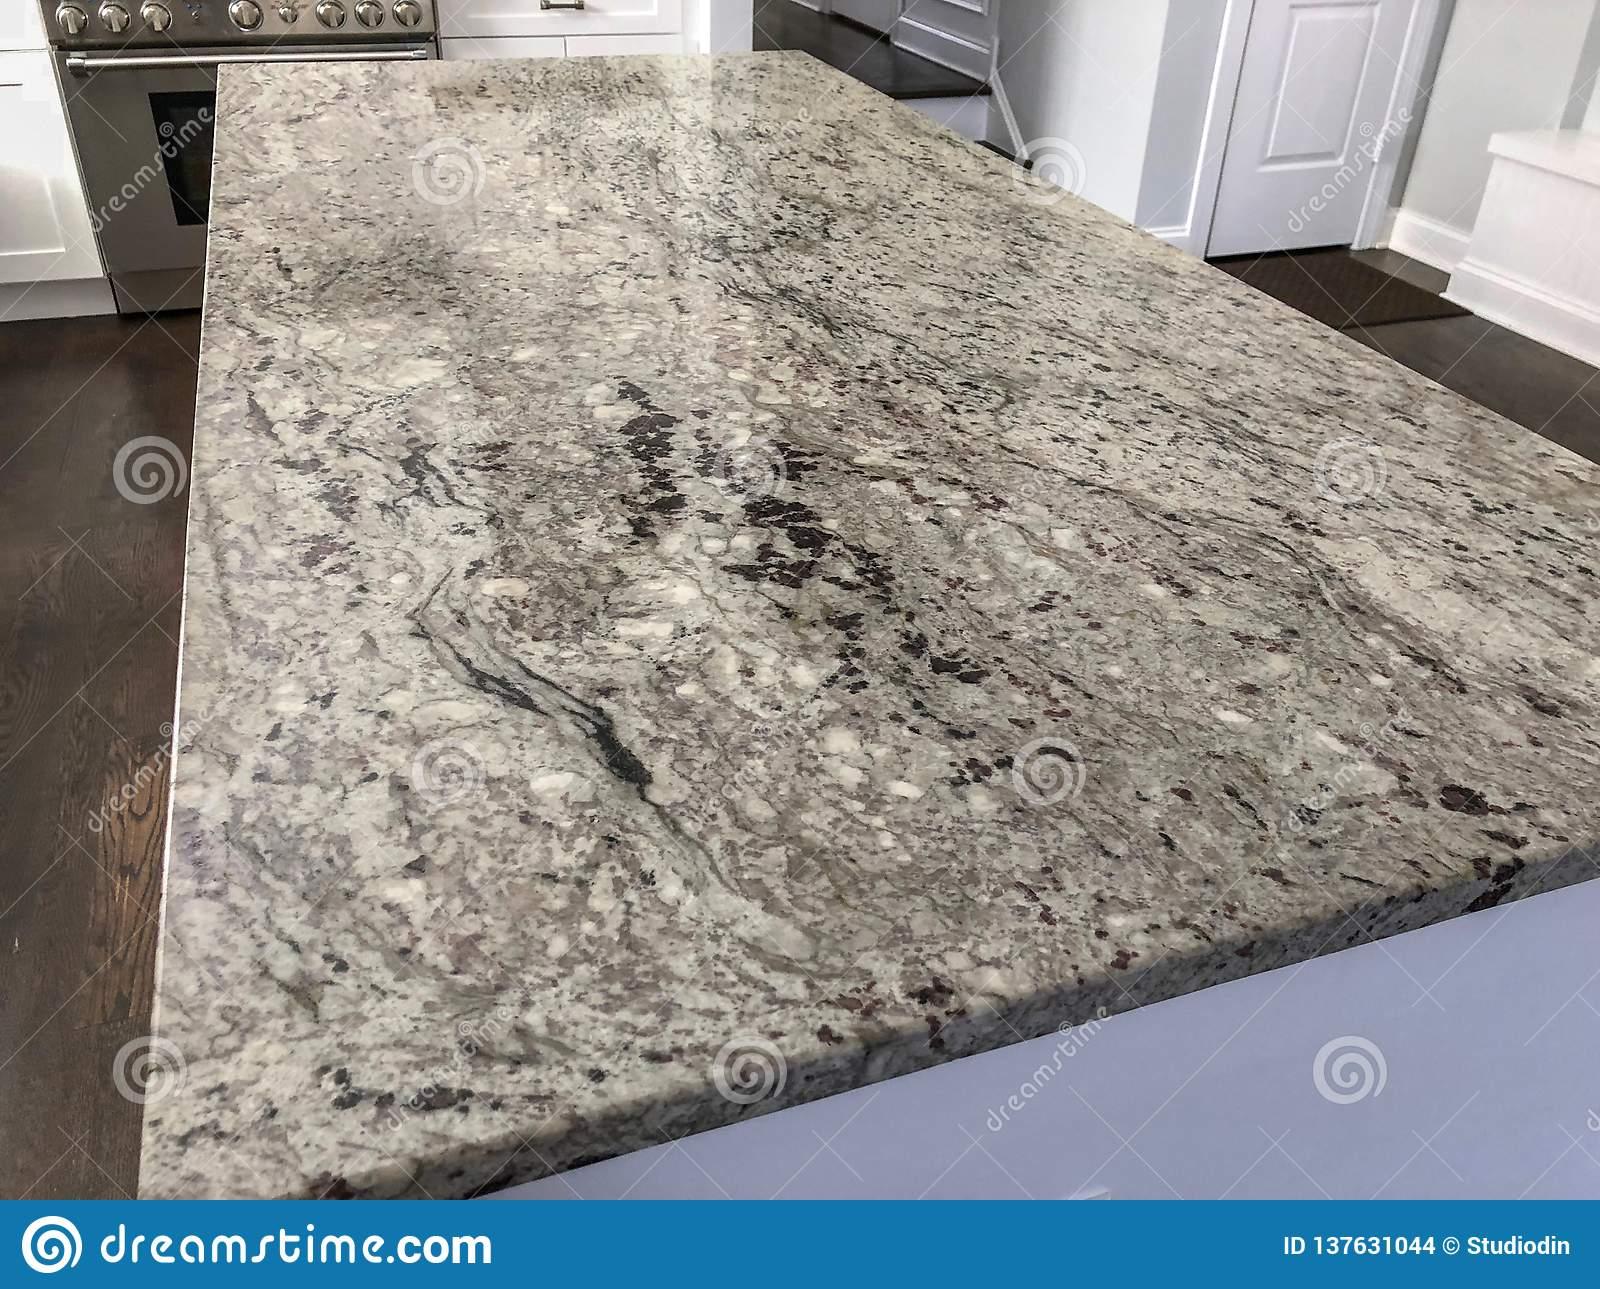 White Modern Kitchen With Granite Countertop Island In The Midle Of The Kitchen Stock Photo Image Of Appliances Marble 137631044